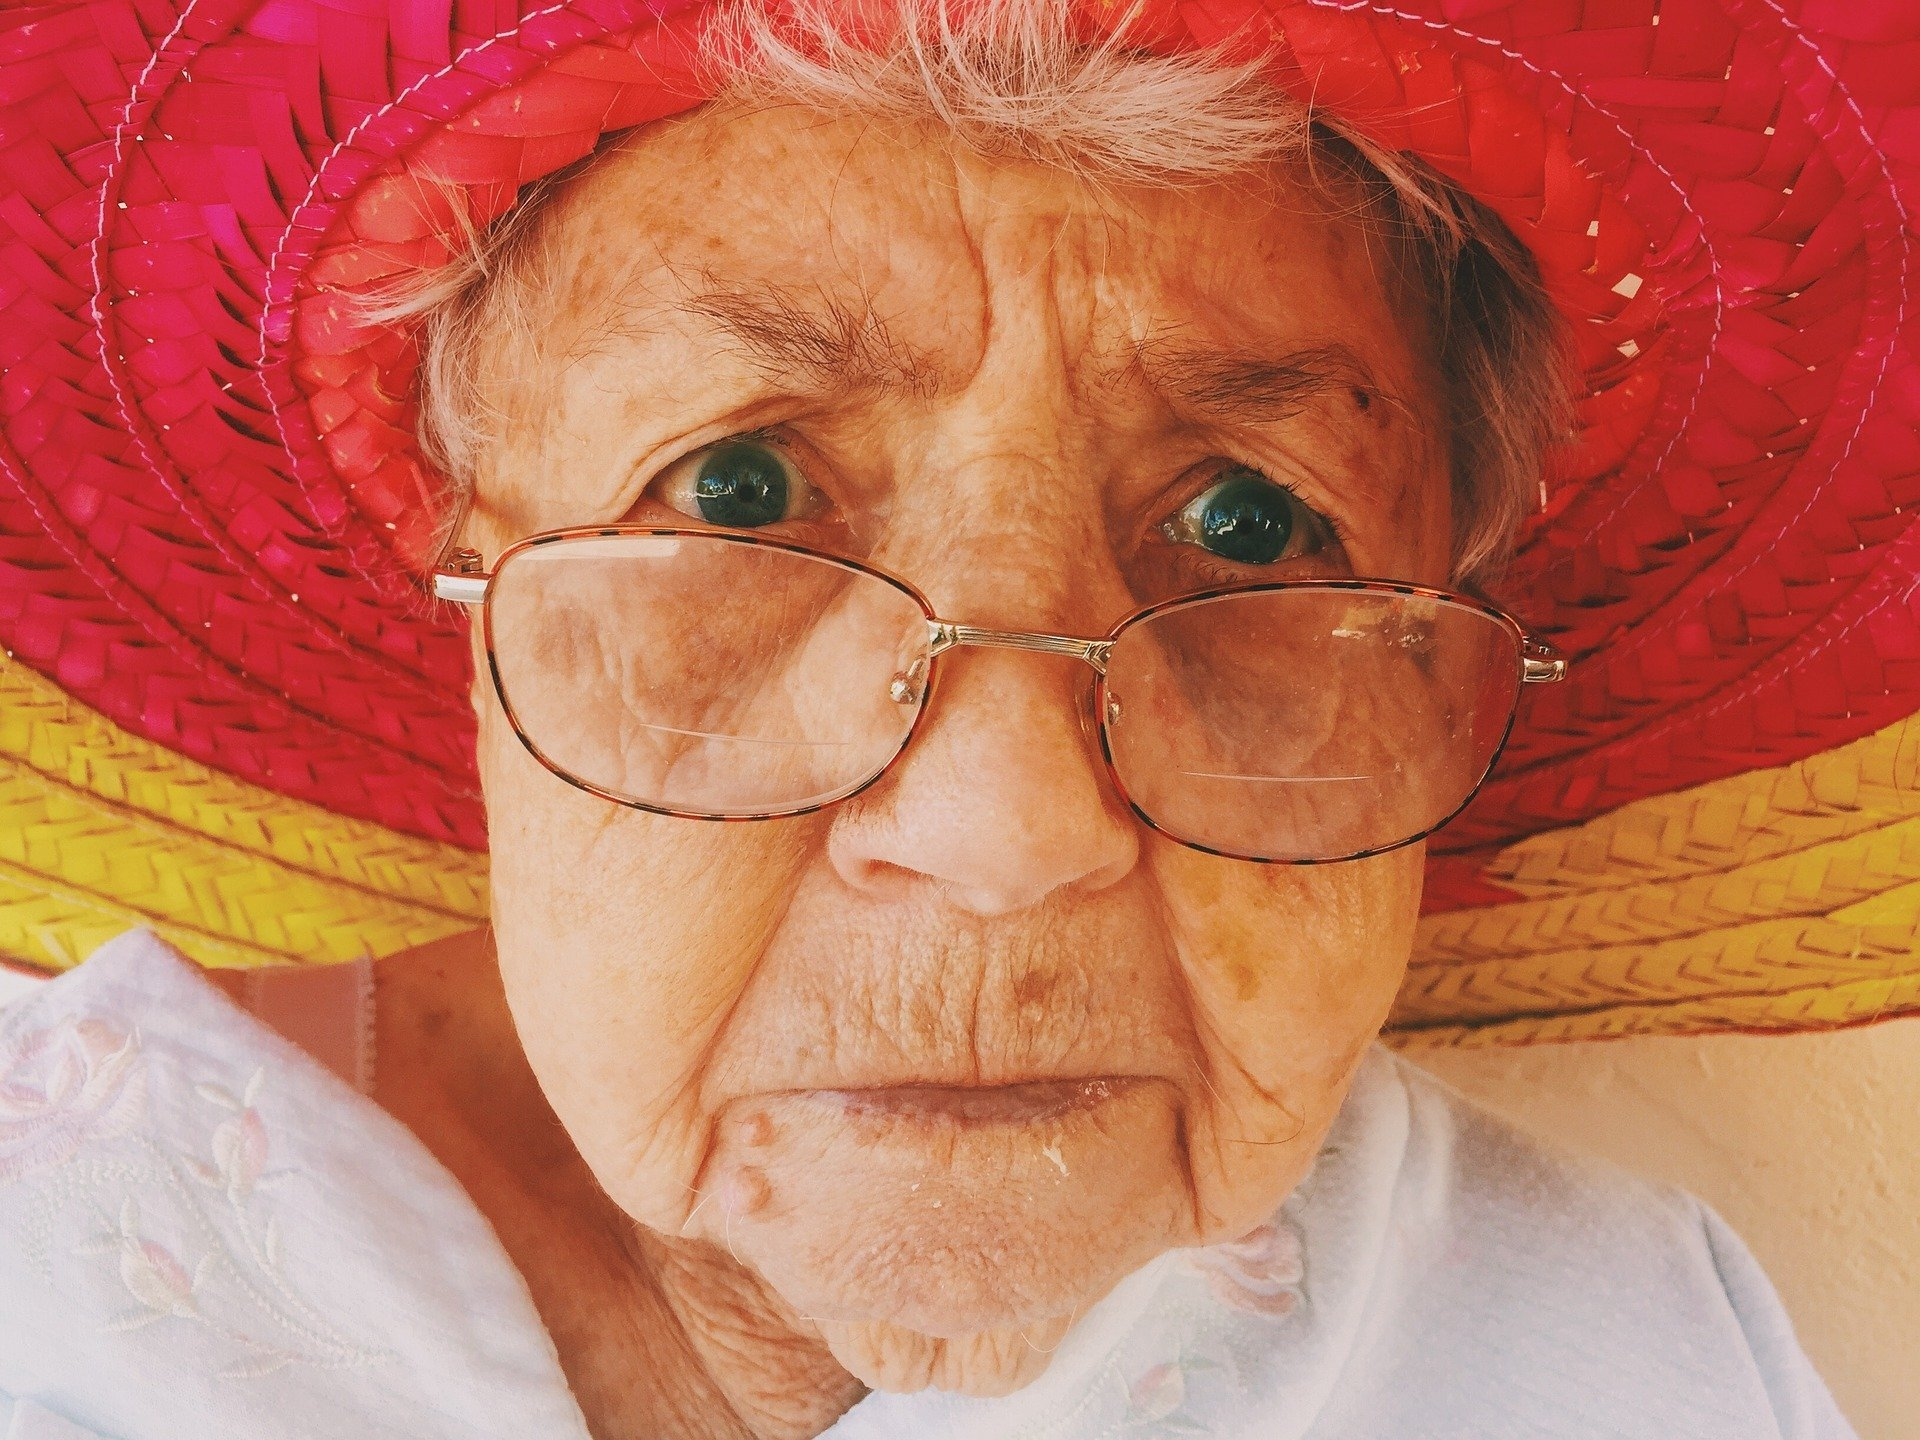 Old woman with a hat.   Source: Pixabay